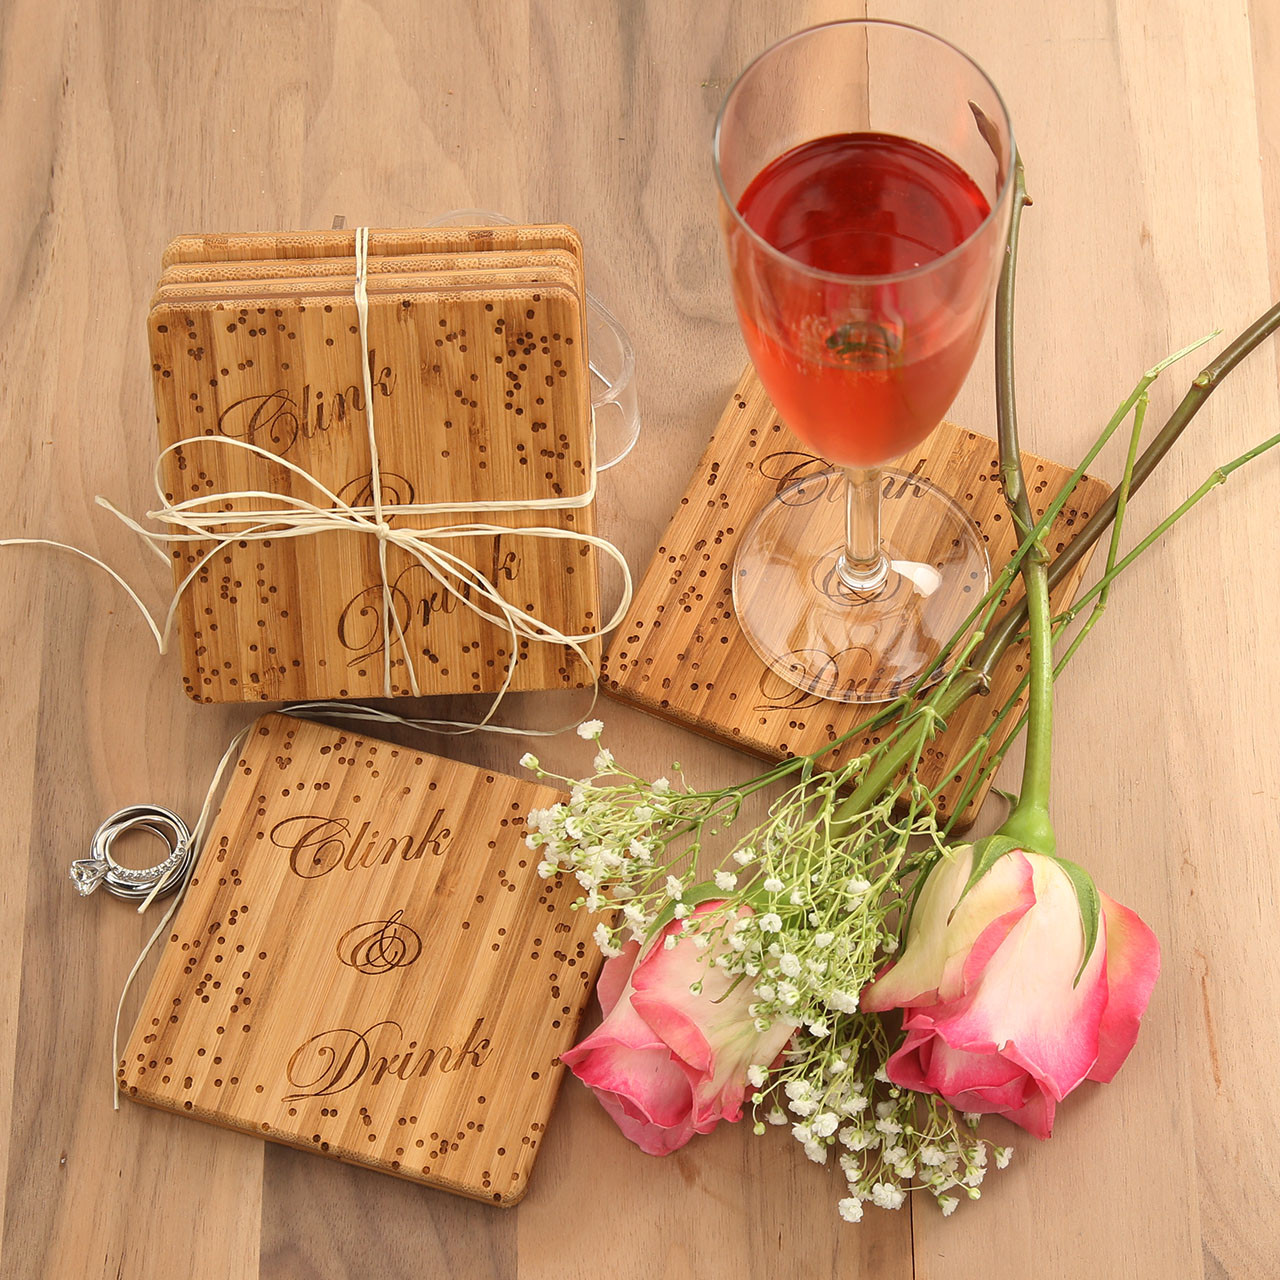 Clink drink coaster set bamboo custom cutting boards gifts engraved - Coaster sets for drinks ...